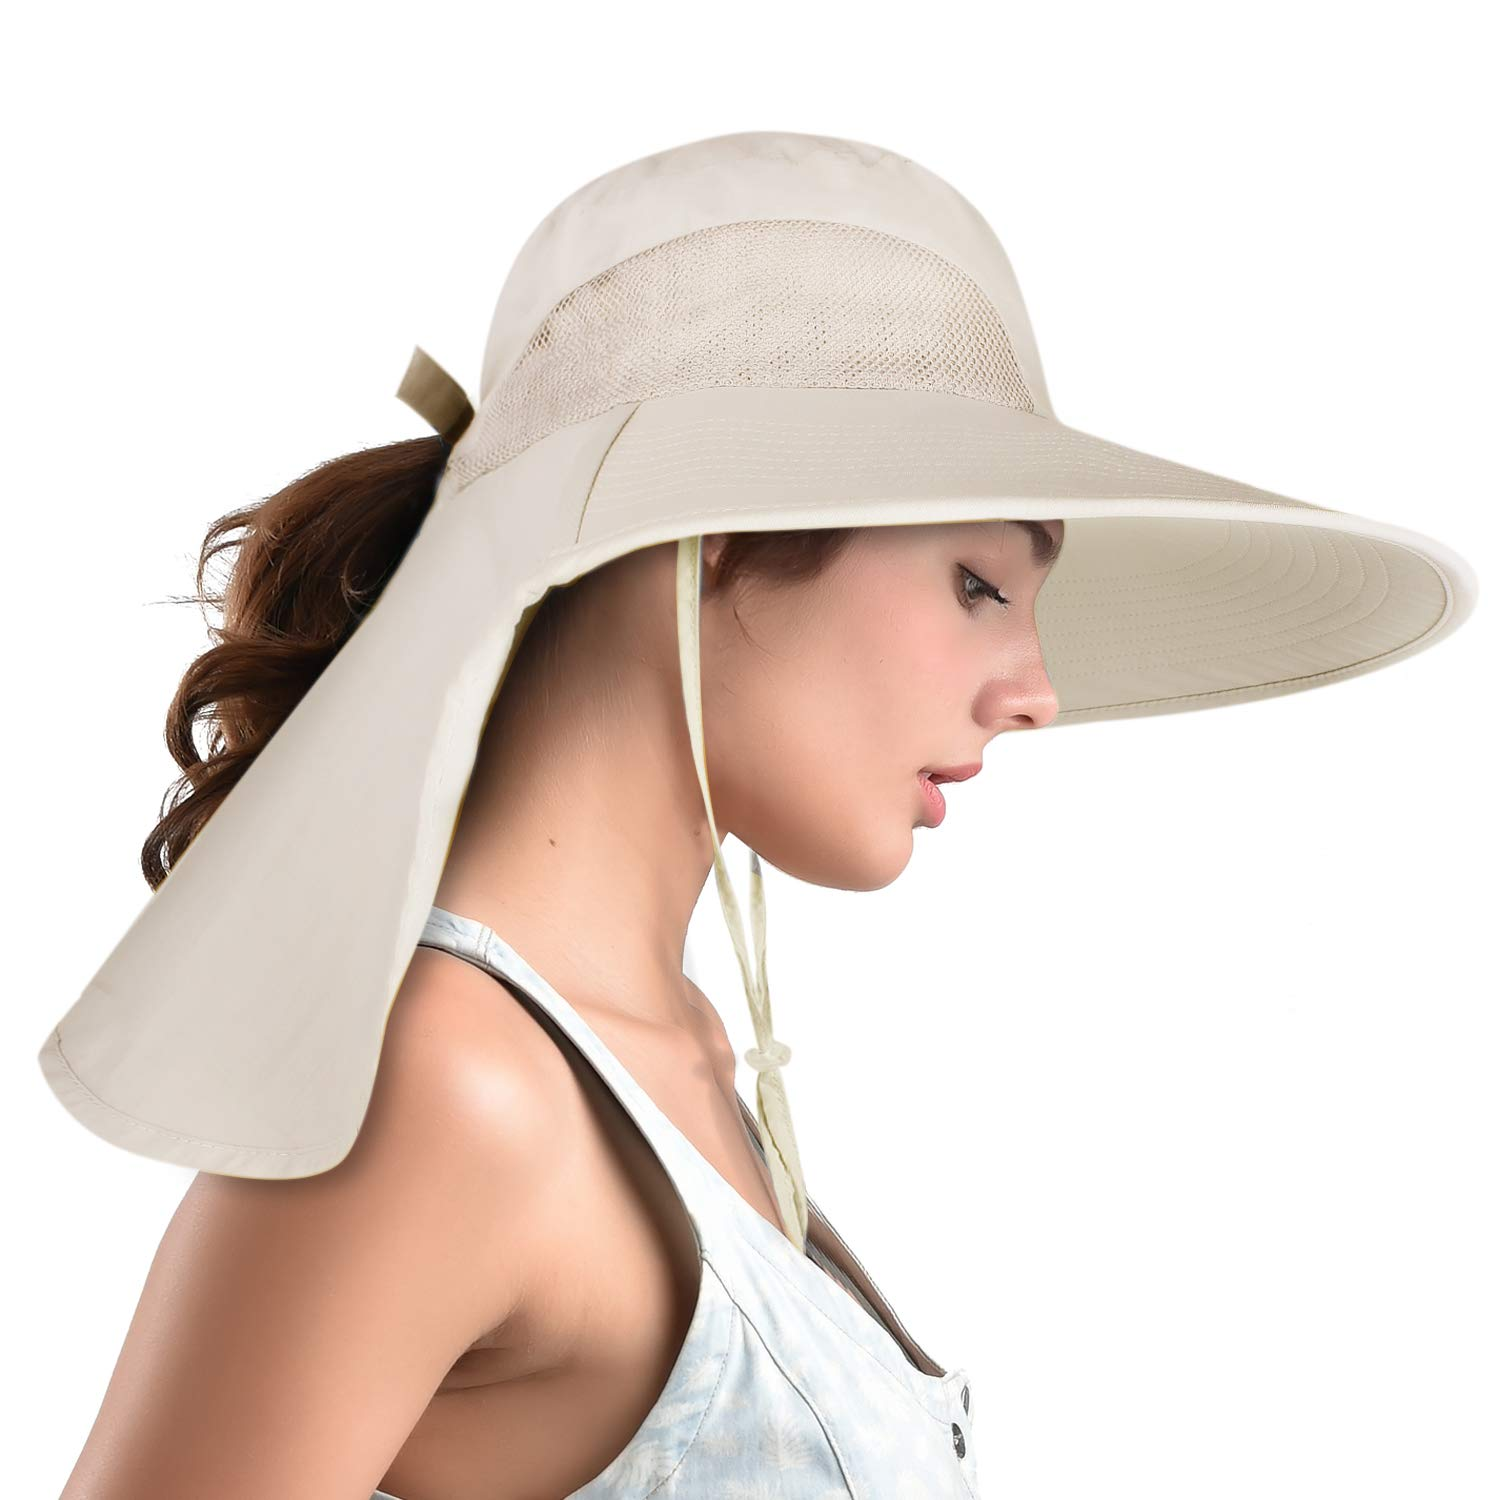 31ca95b55 camptrace Safari Sun Hats for Women Wide Brim Fishing Hat with Large Neck  Flap Ponytail Sun Protection UPF Summer Cooling Bucket hat Packable Sunhat  ...